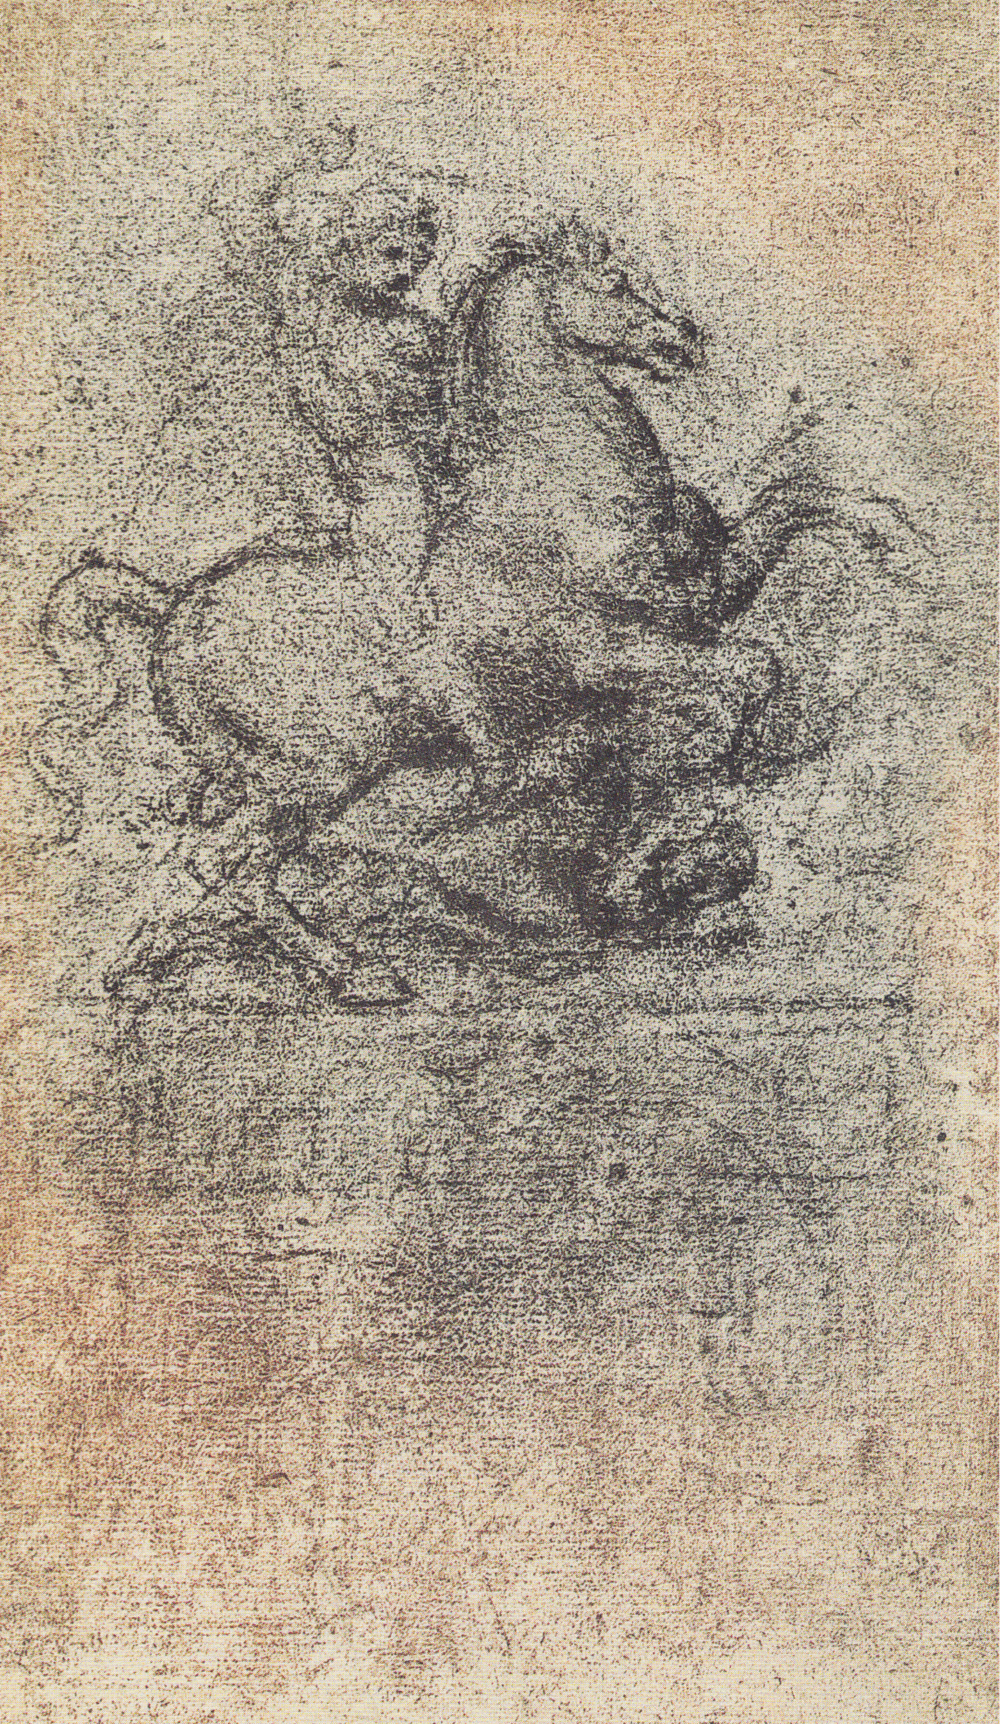 Leonardo da Vinci - Drawings - Animals - Horses - 03.jpg